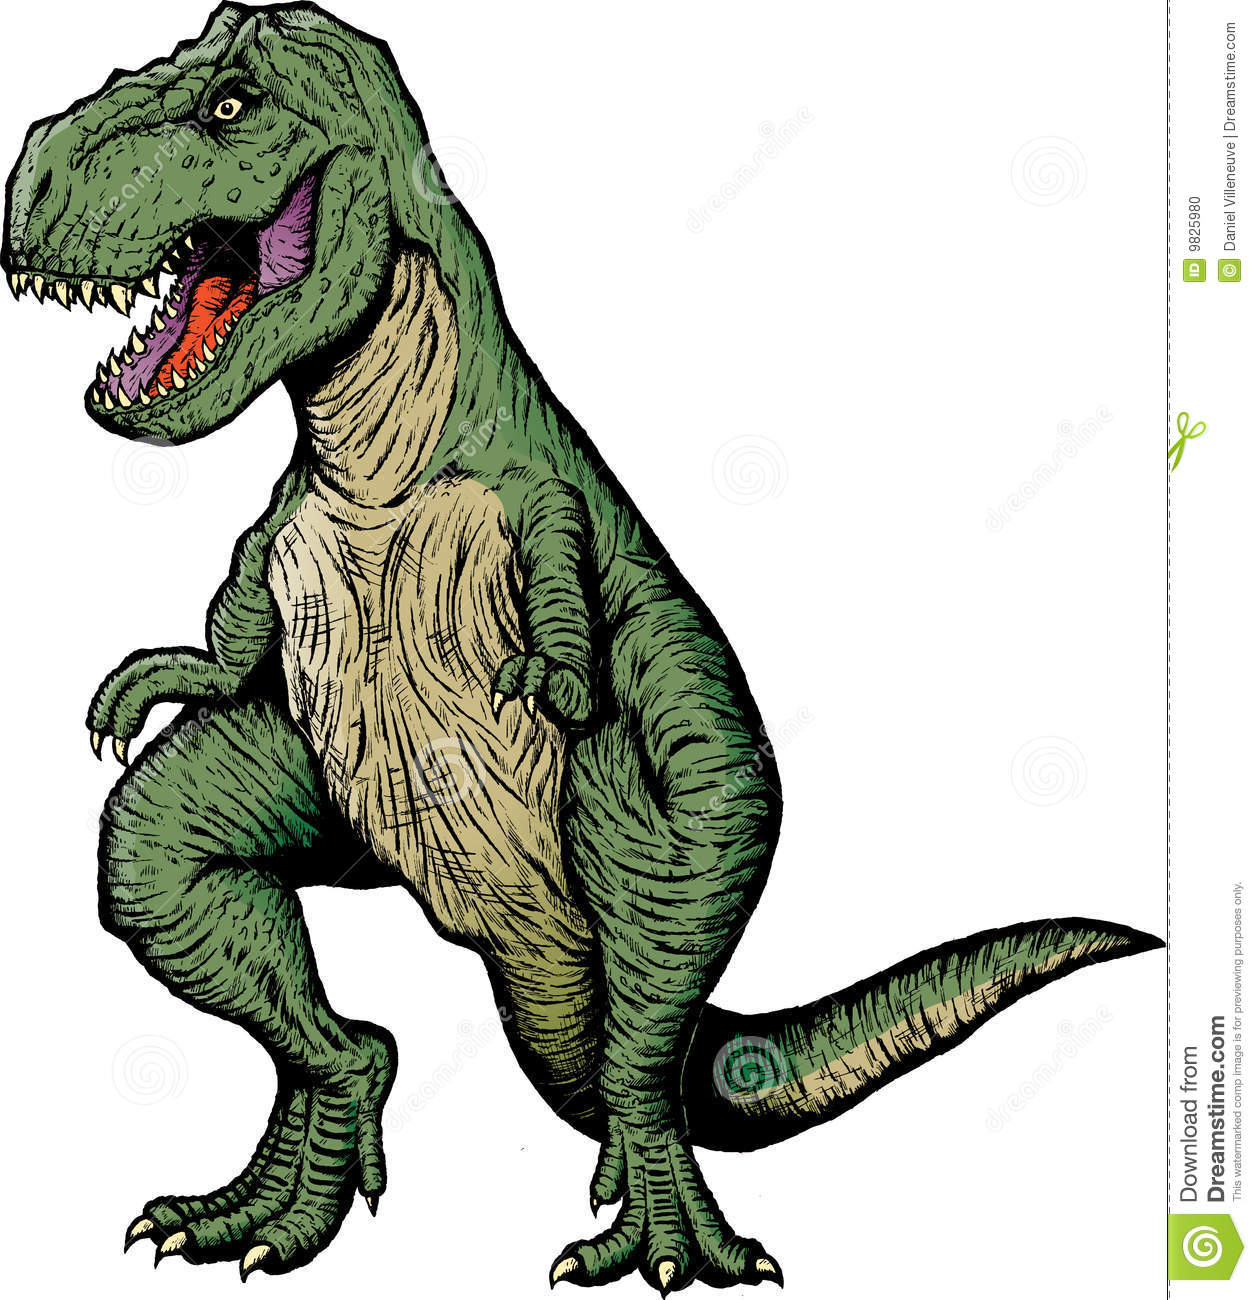 Tyrannosaurus Rex clipart #6, Download drawings